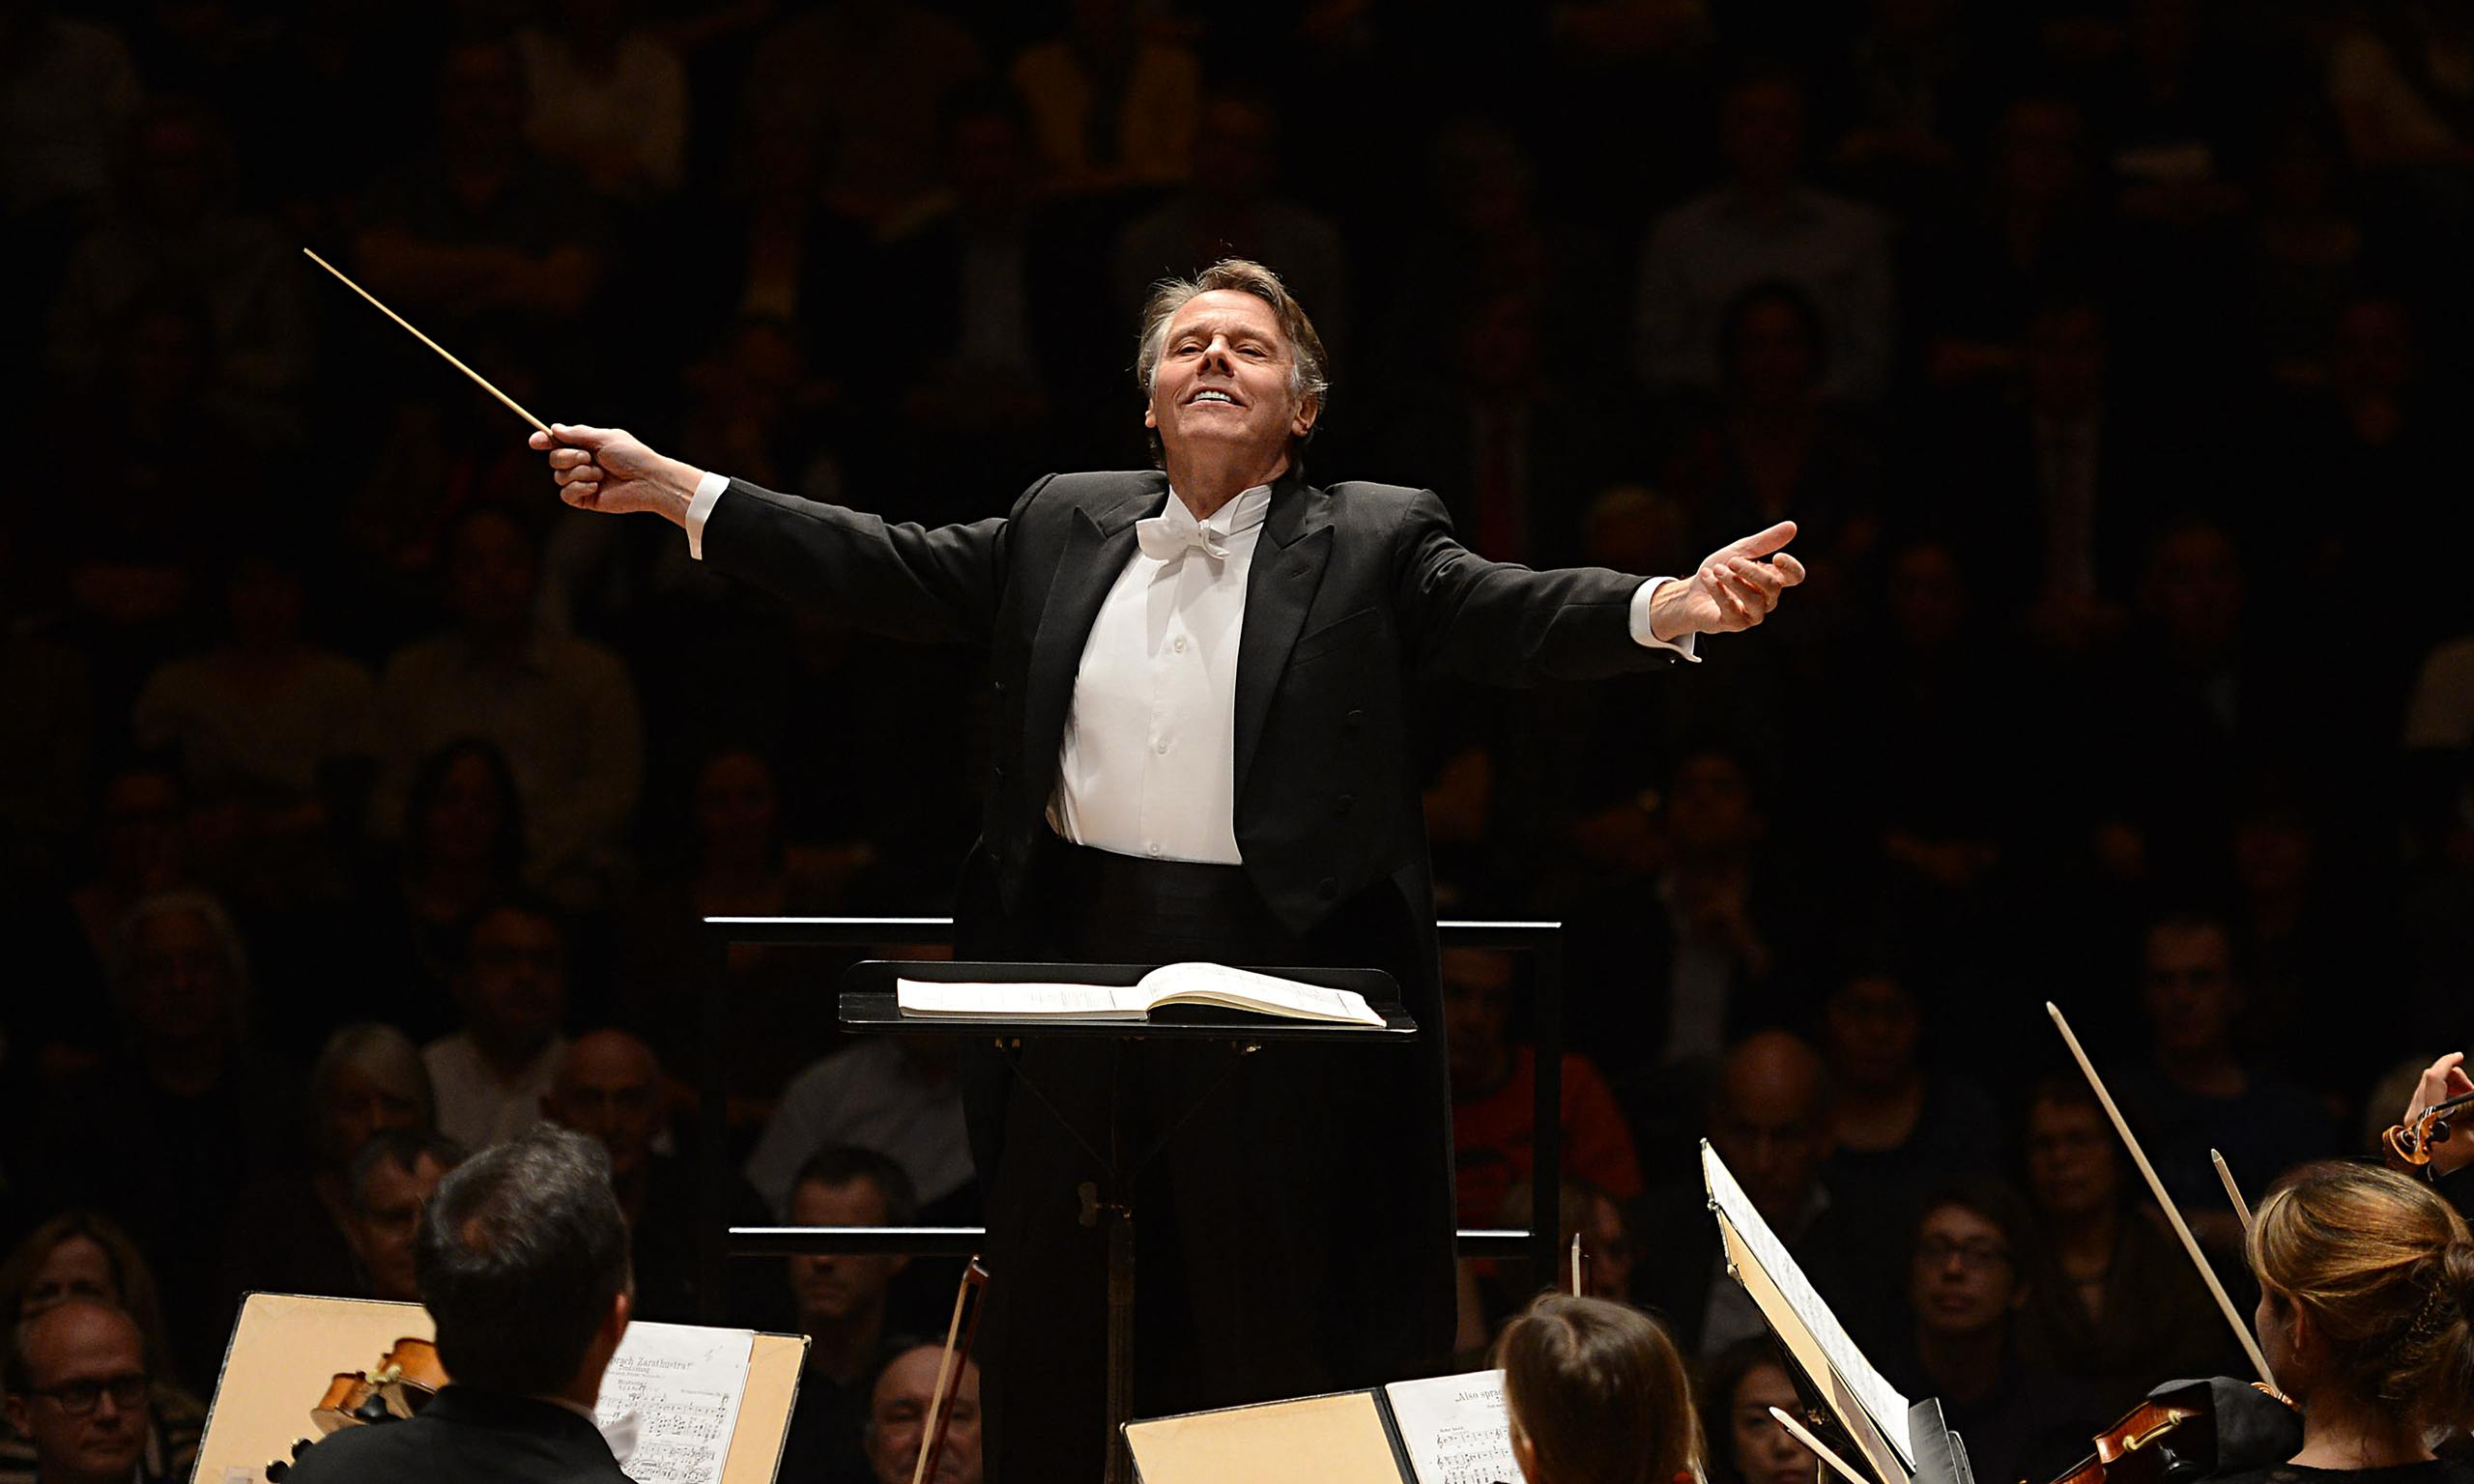 Mariss Jansons and the Royal Concertgebouw Orchestra